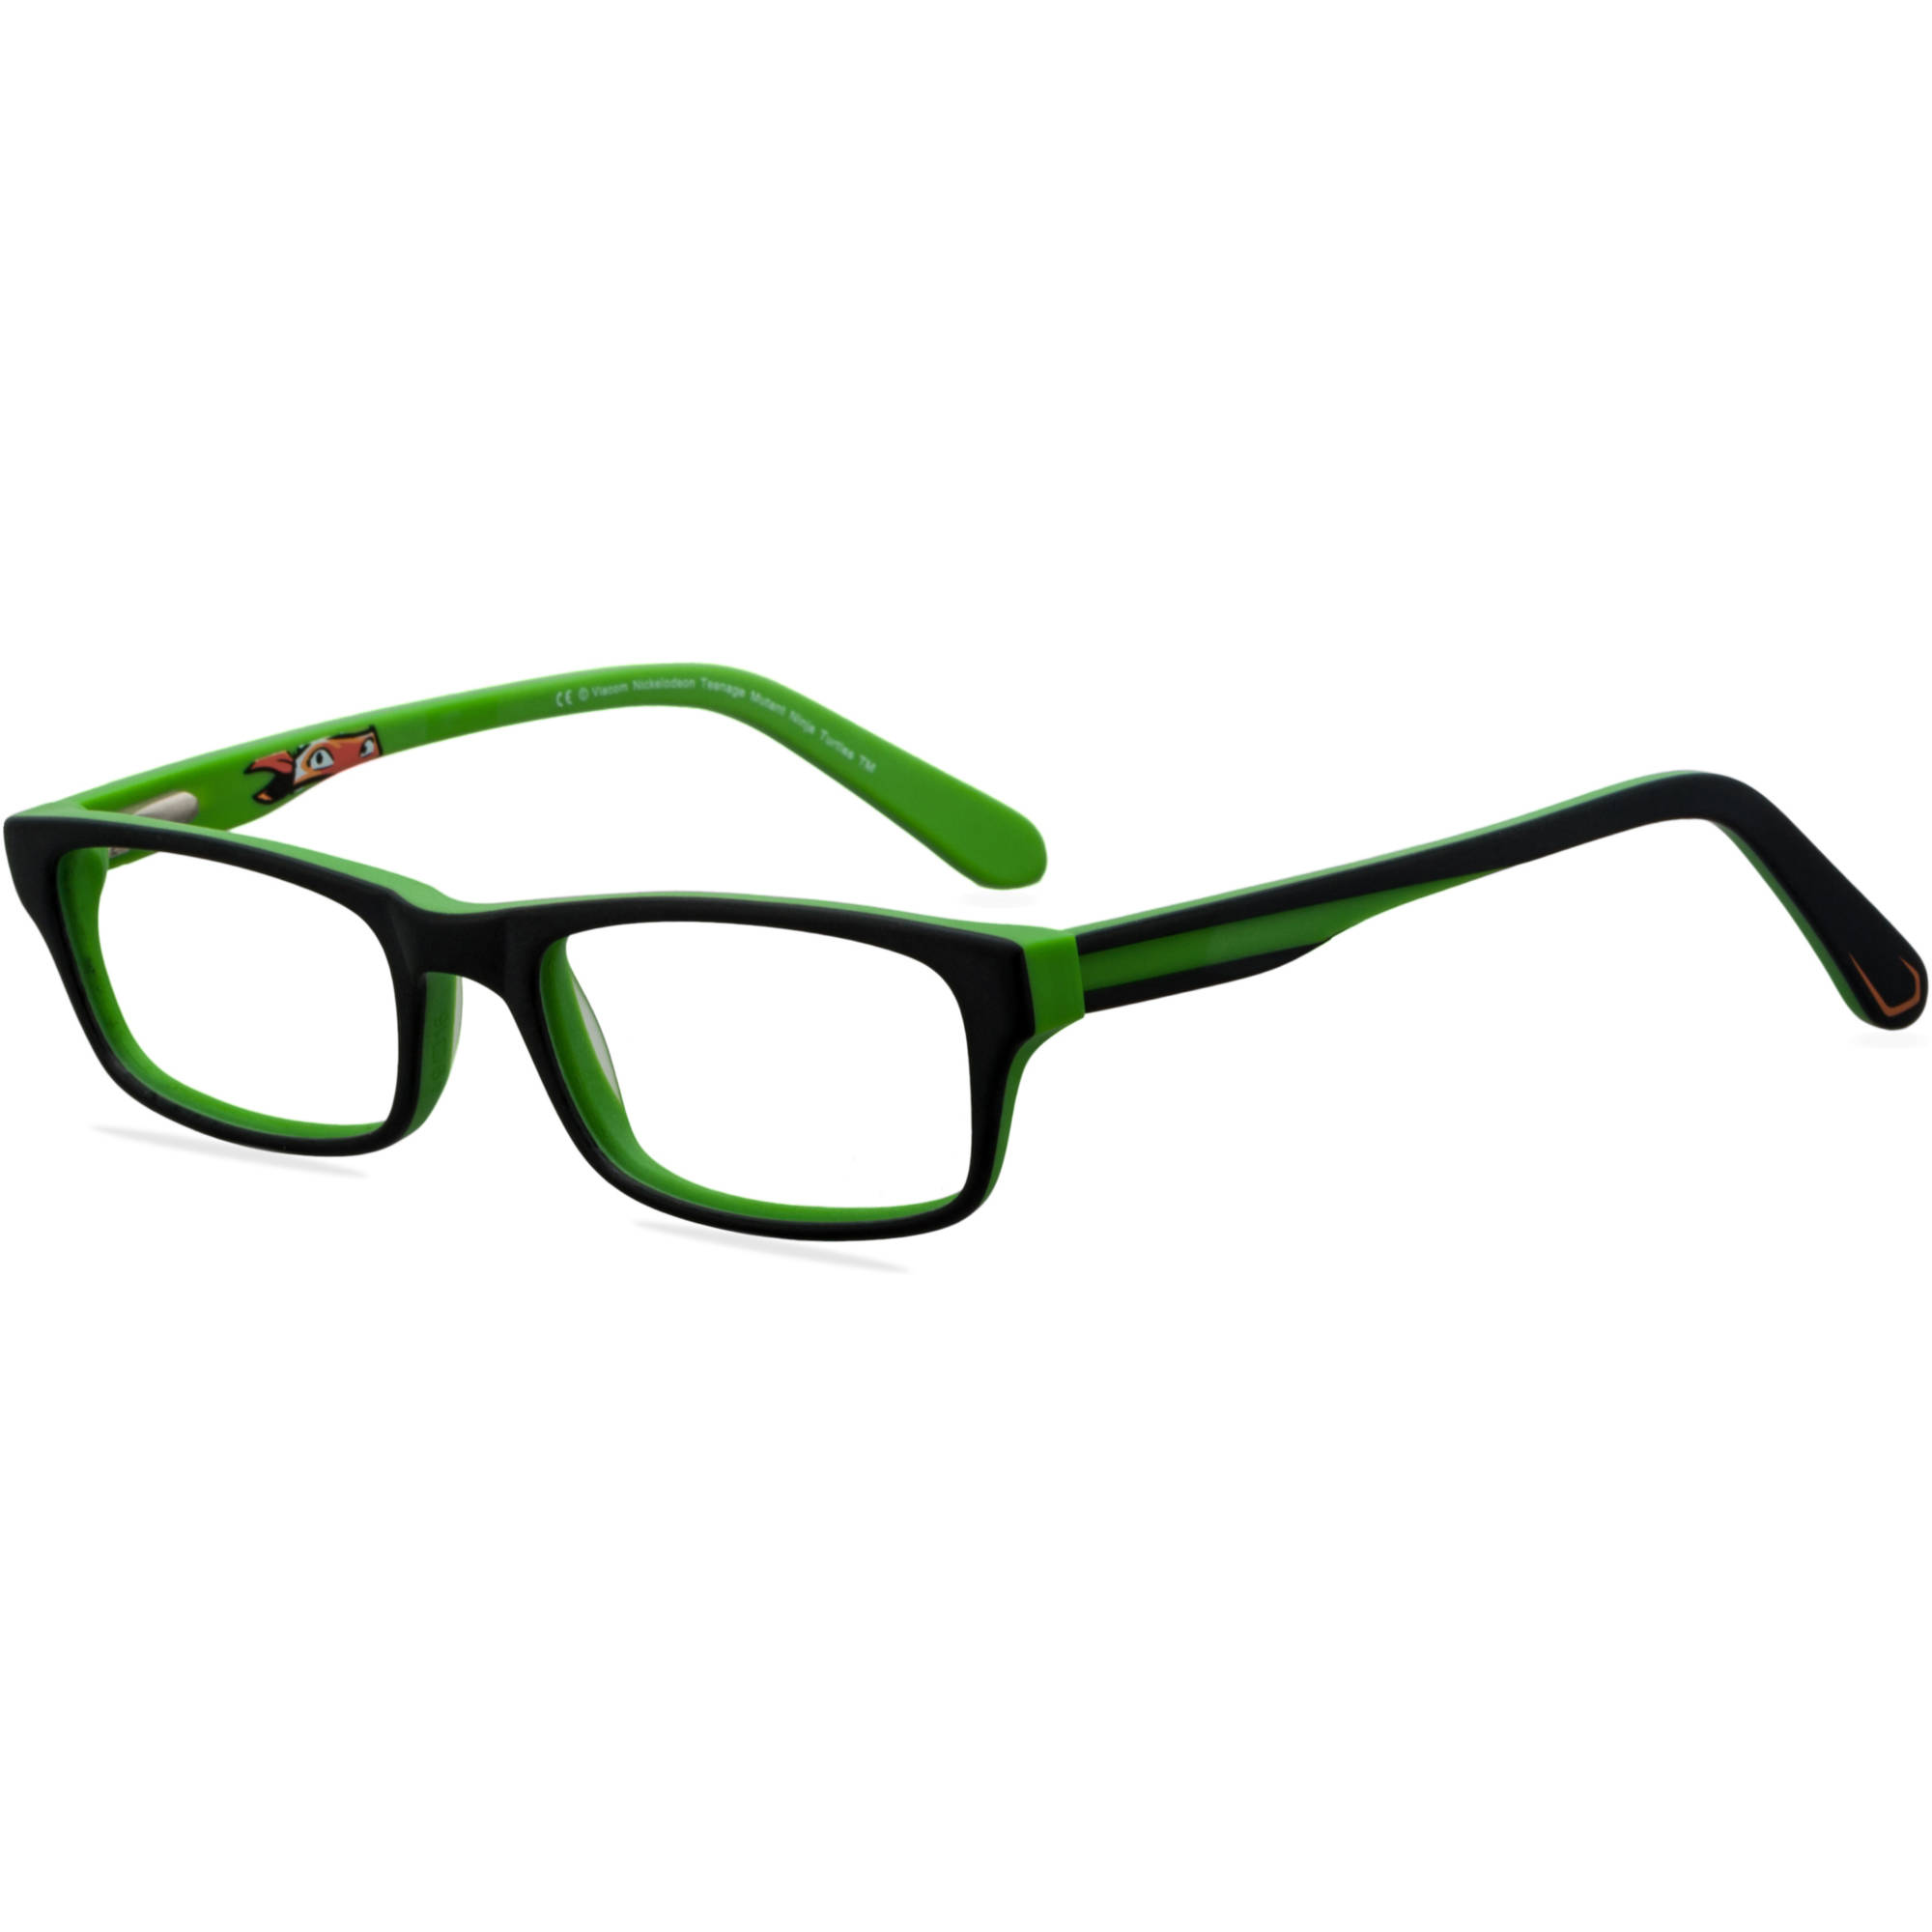 prescription eyeglasses walmartcom